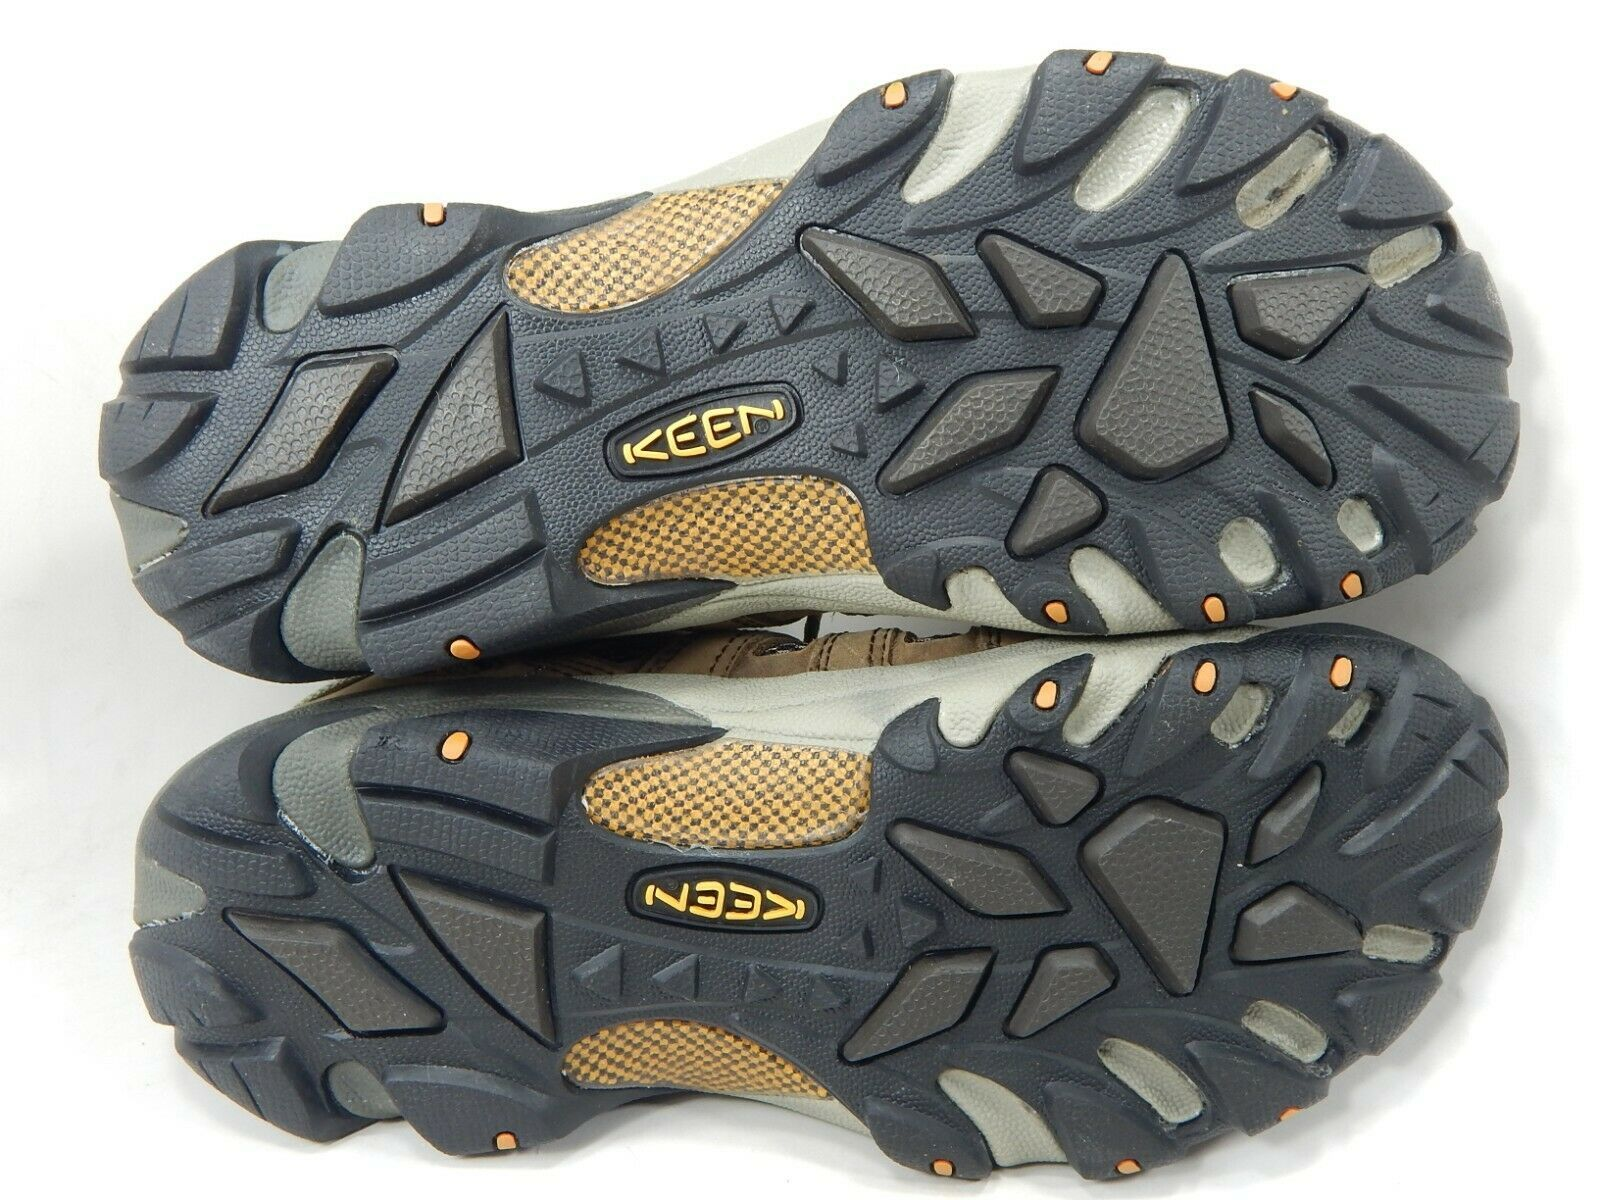 Keen Voyageur Low Top Size US 10.5 M (D) EU 44 Men's Trail Hiking Shoes Brown image 8